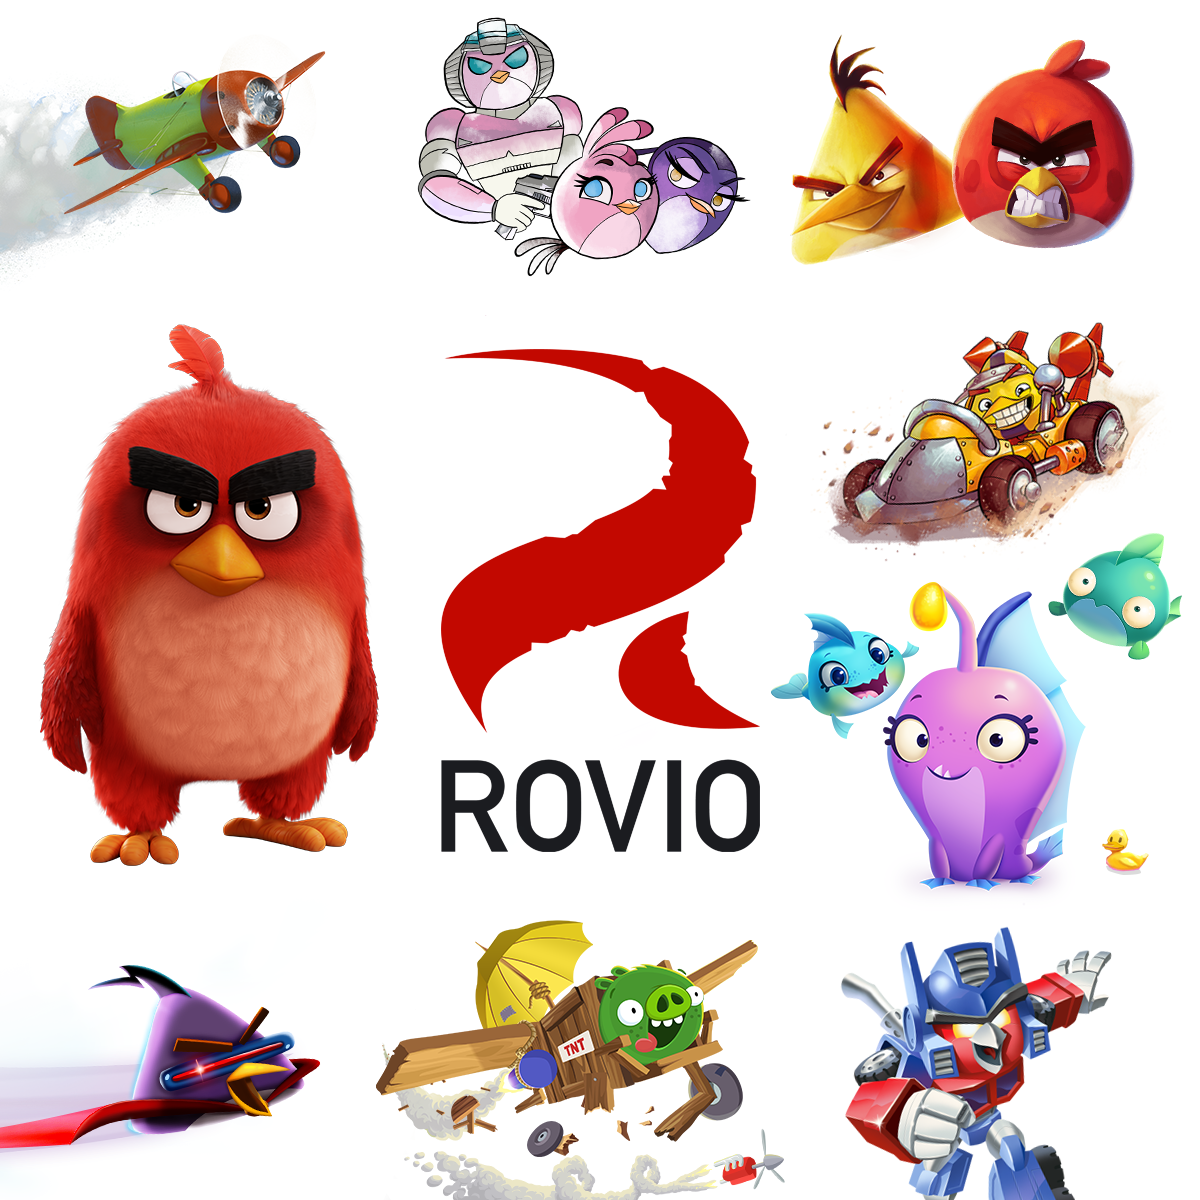 Rovio Com The Home Of Rovio Maker Of Angry Birds Bad Piggies